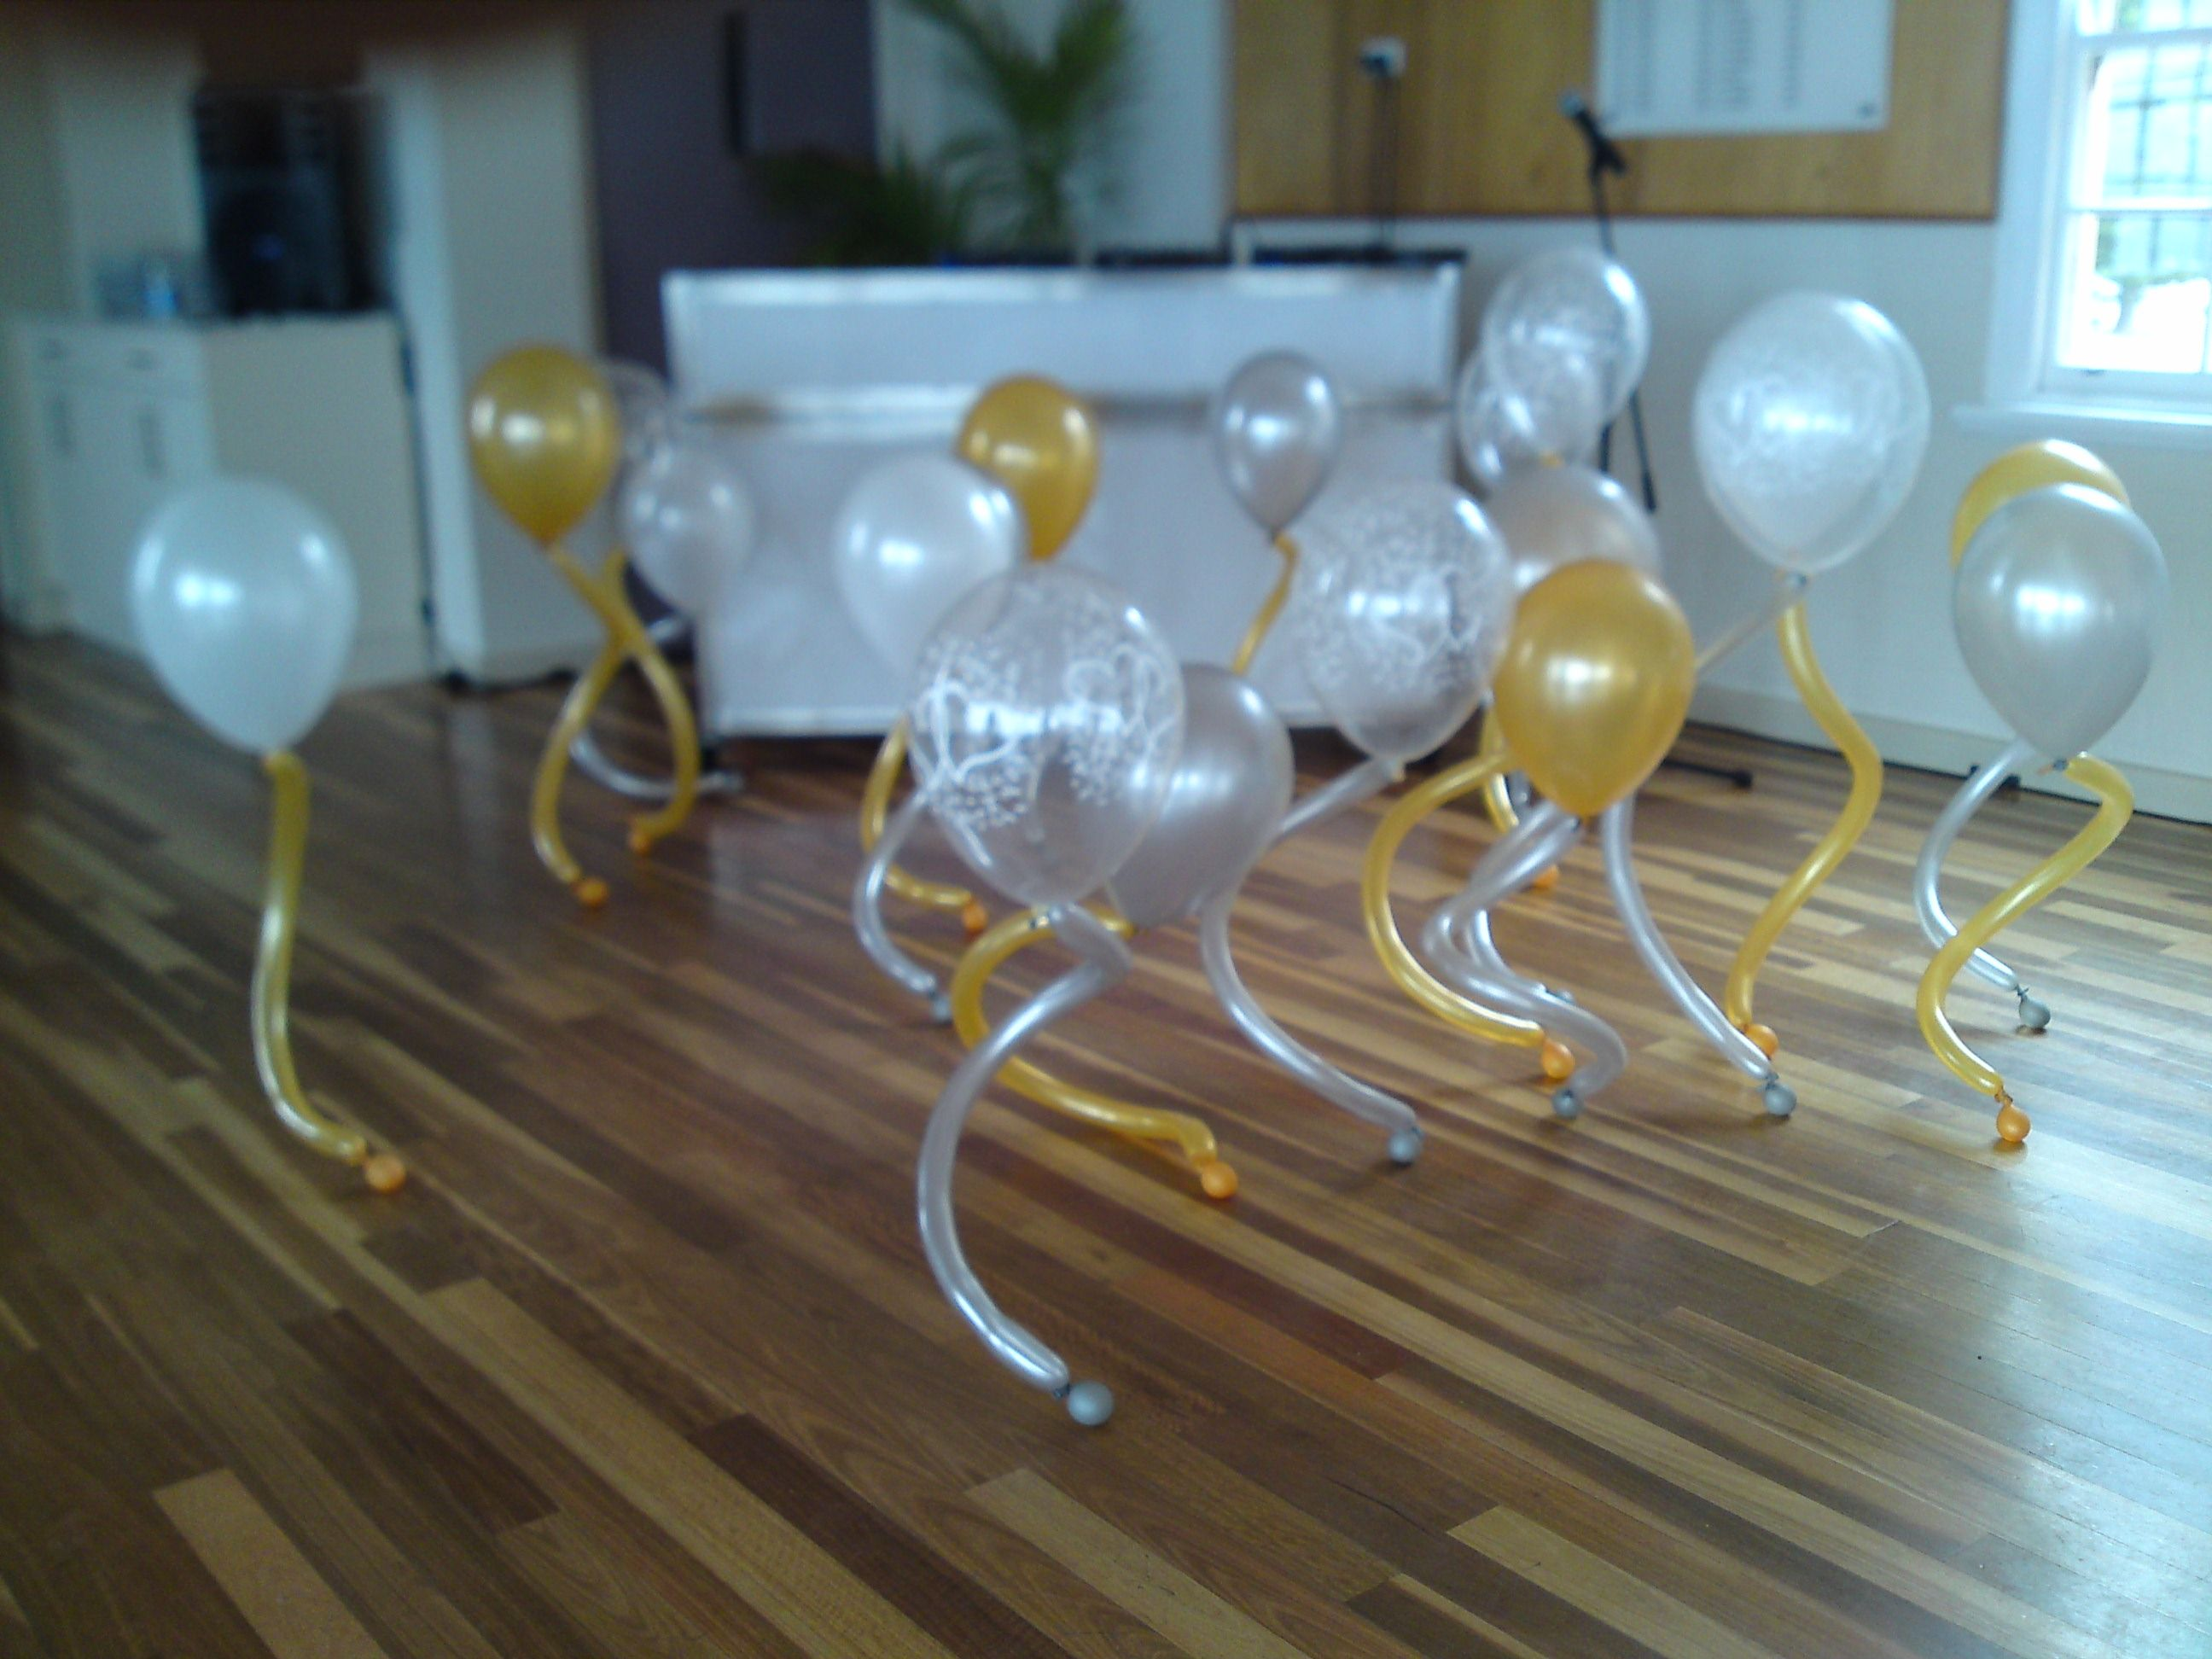 Love Wedding Decorations A Few Diamond Clear Double Heart Print Balloons Add A Touch Of